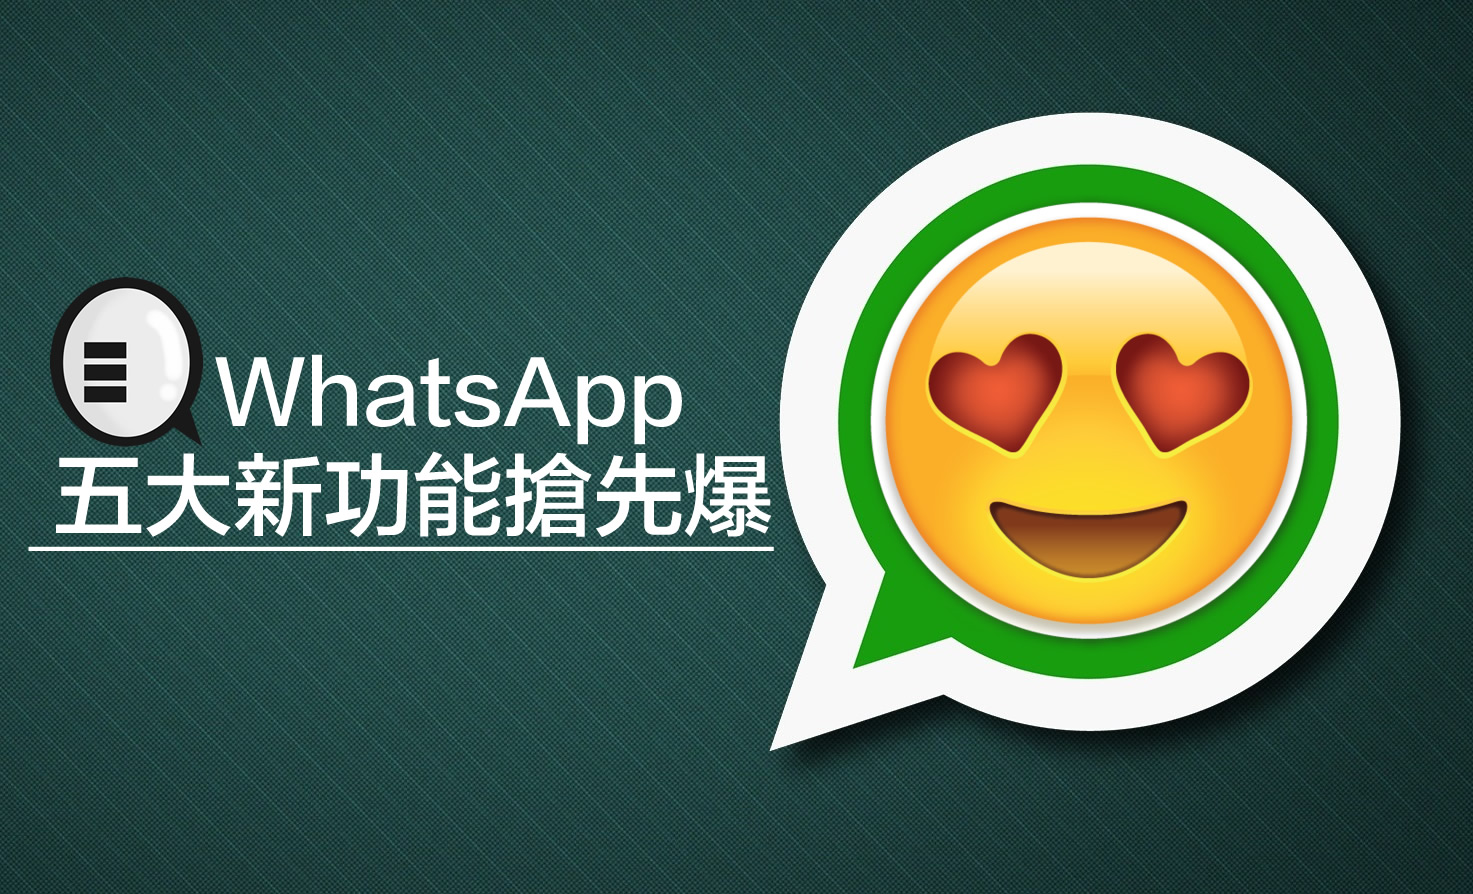 whatsapp-5features